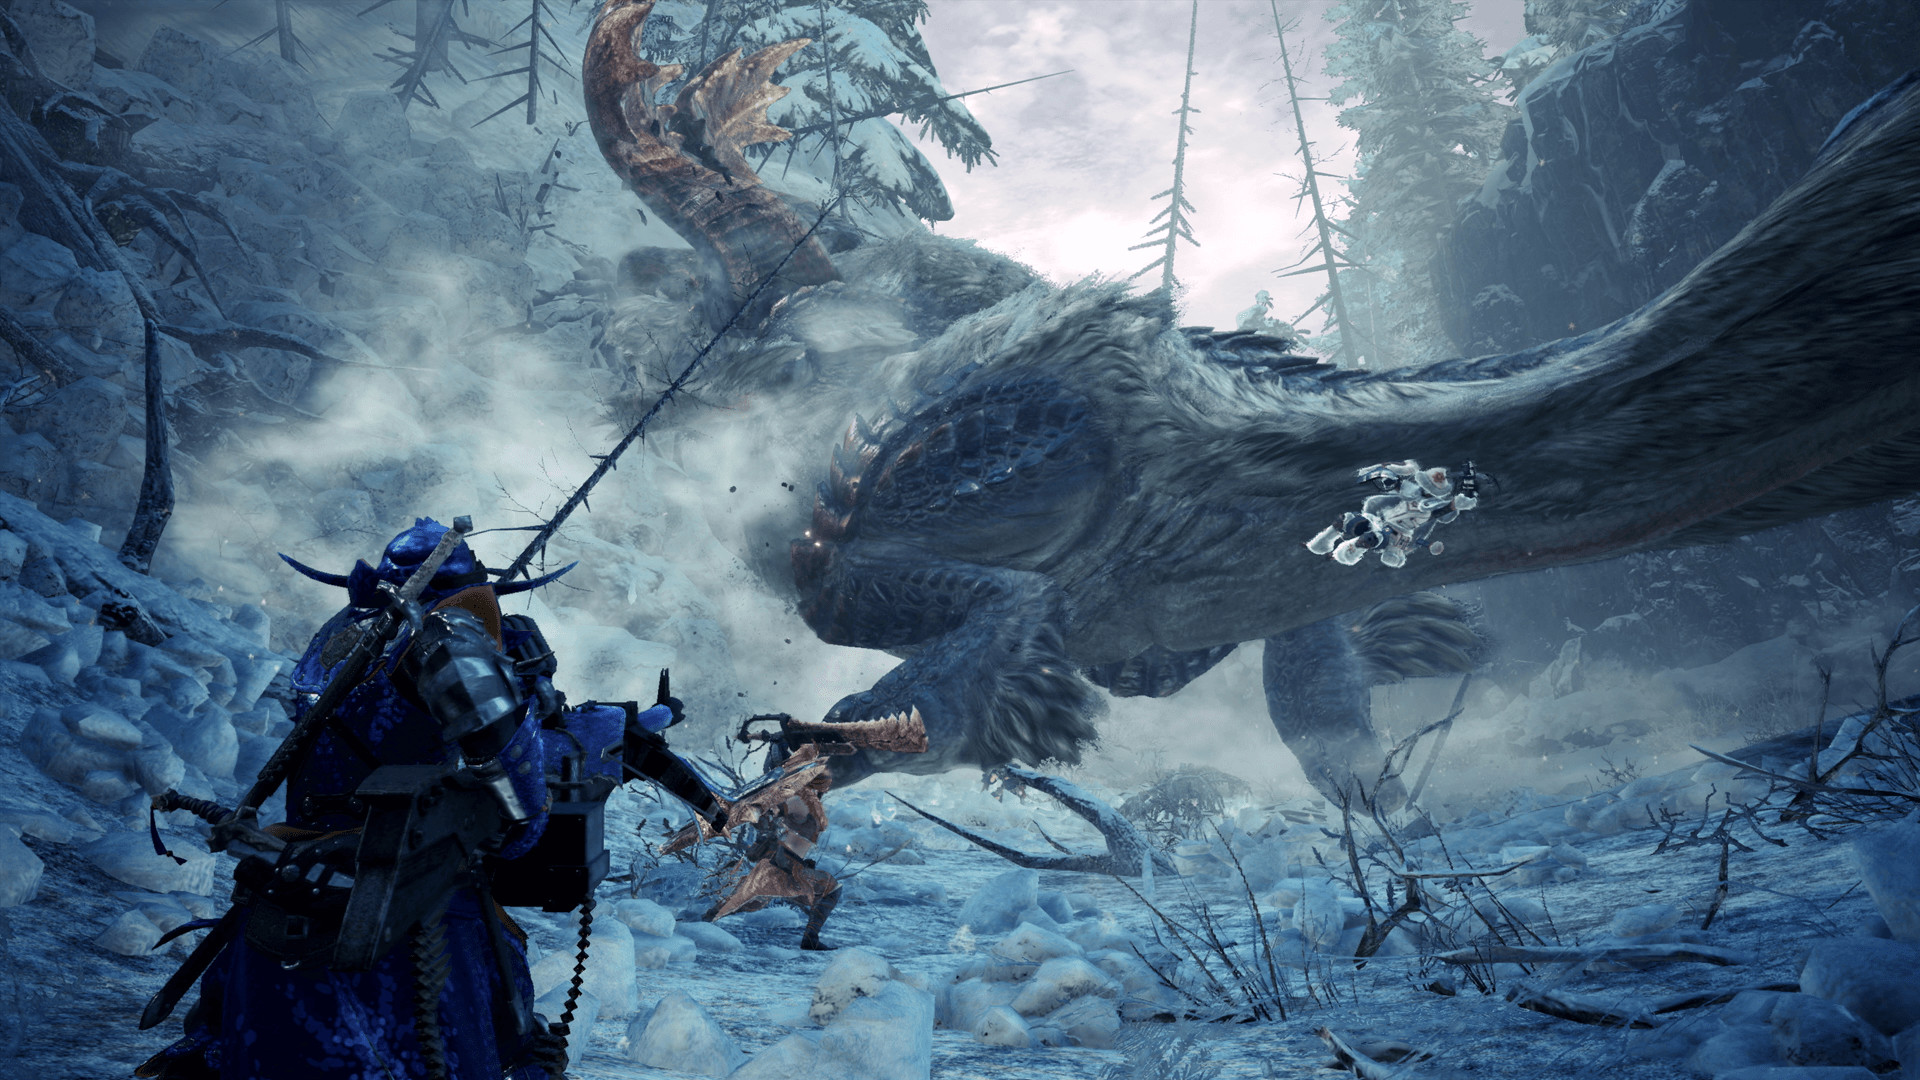 Capcom Acknowledges Recent Crashing Issues With Monster Hunter World: Iceborne, Is Looking Into A Fix